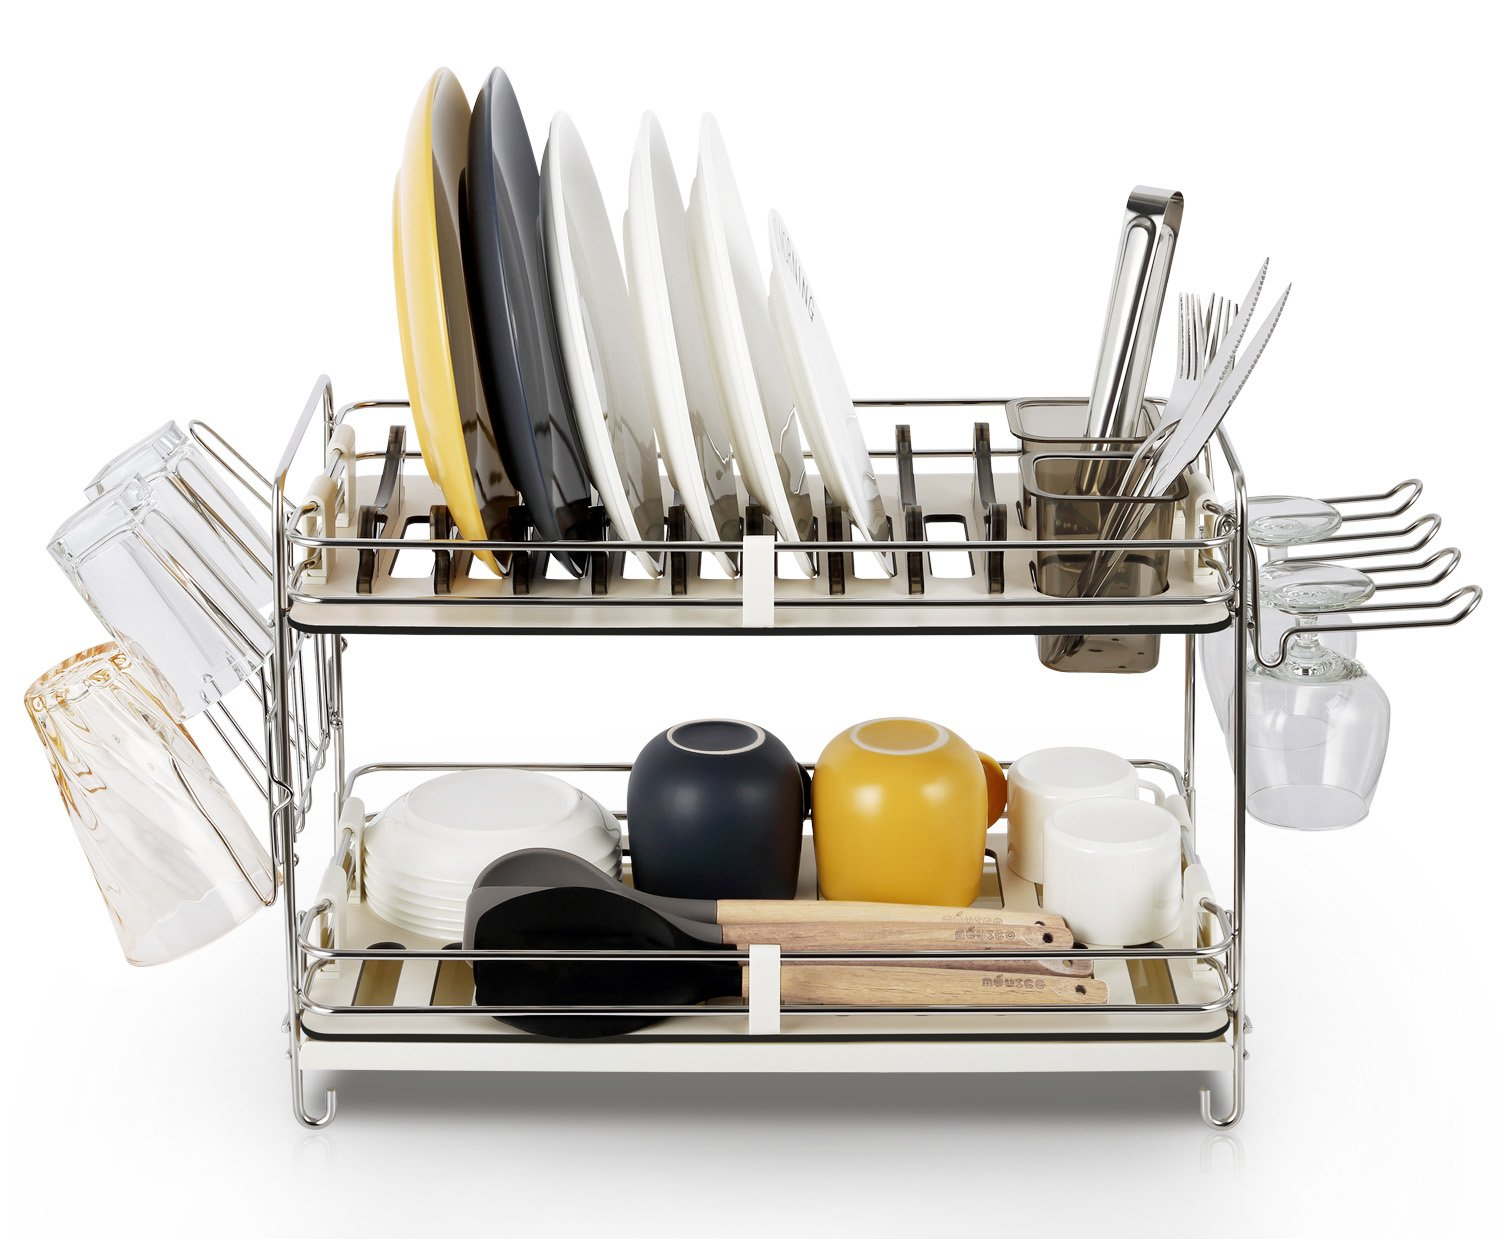 3 advantages of having dish drying rack. Amazon.com: Miusco 2 Tier Stainless Steel Dish Rack With Wine Glass Holder And Drainboard: Kitchen \u0026 Dining 3 Advantages Of Having Drying H